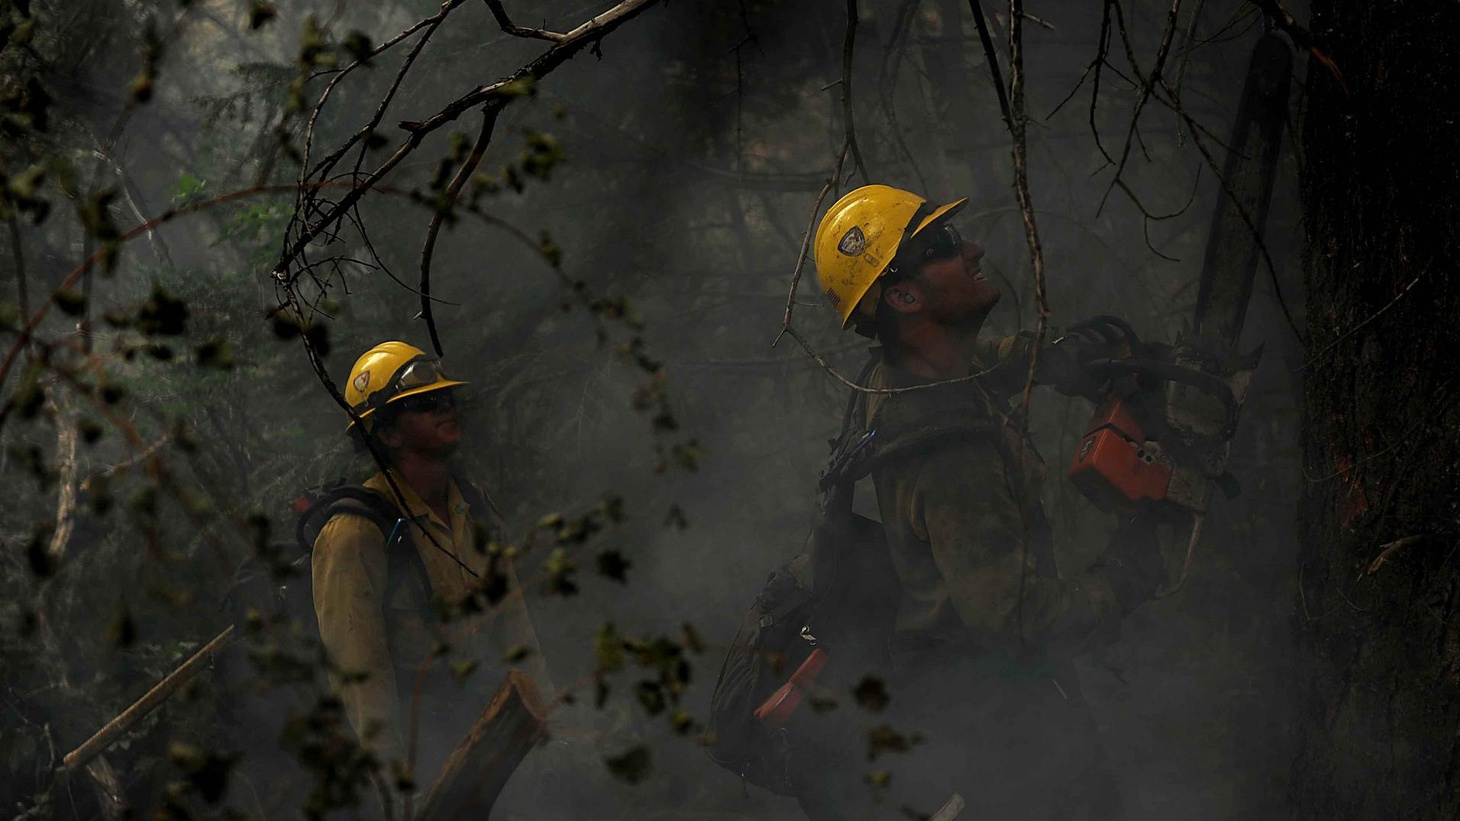 The US government will pay most of the cost of fighting major blazes in five western states. Critics say that why local governments allow developments too close to forests.